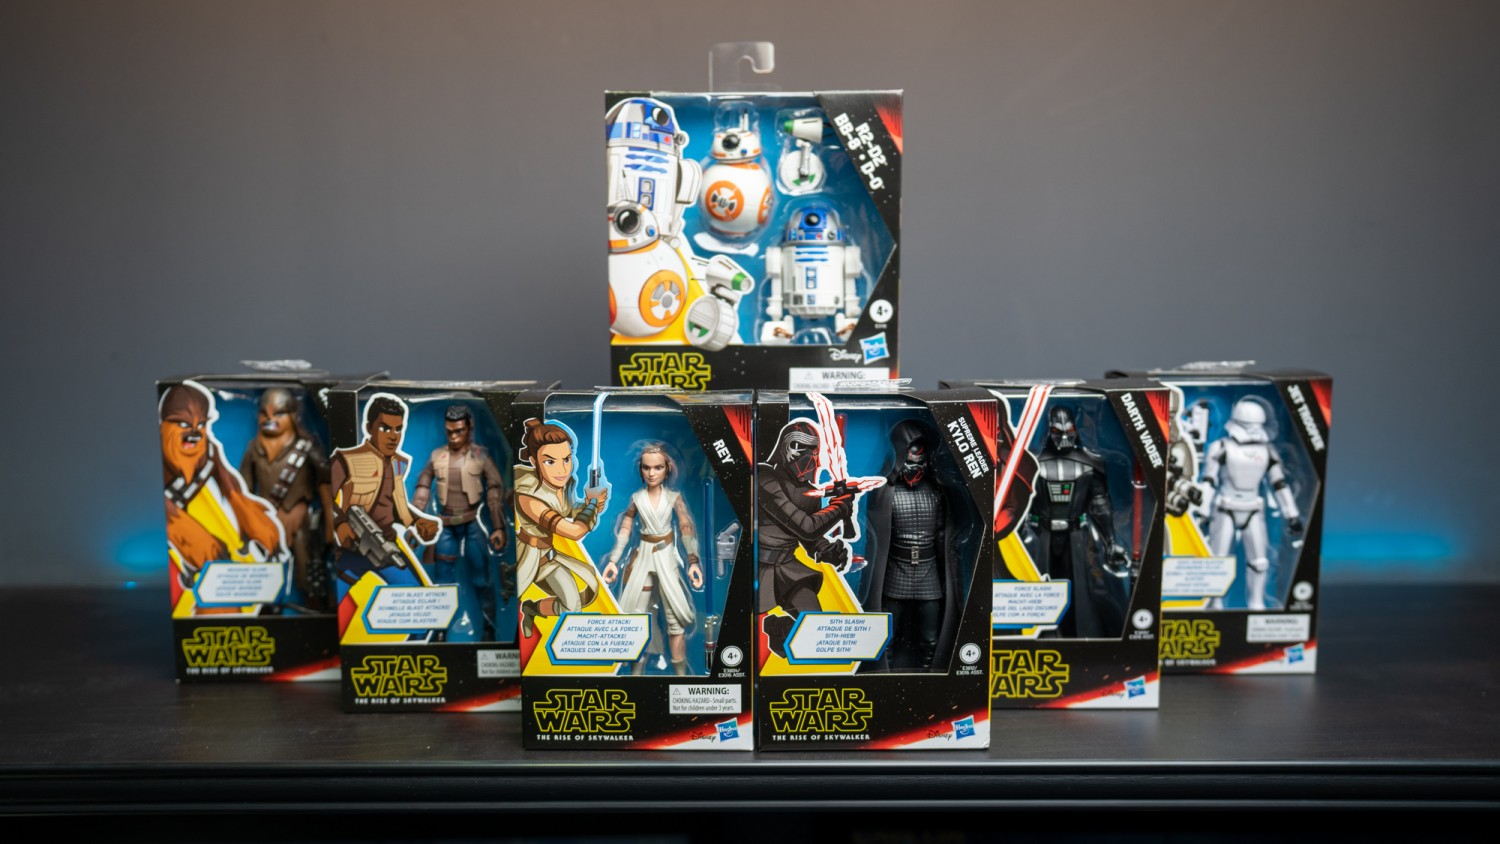 Star Wars and The Rise of Skywalker Action Figures Galaxy of Adventures